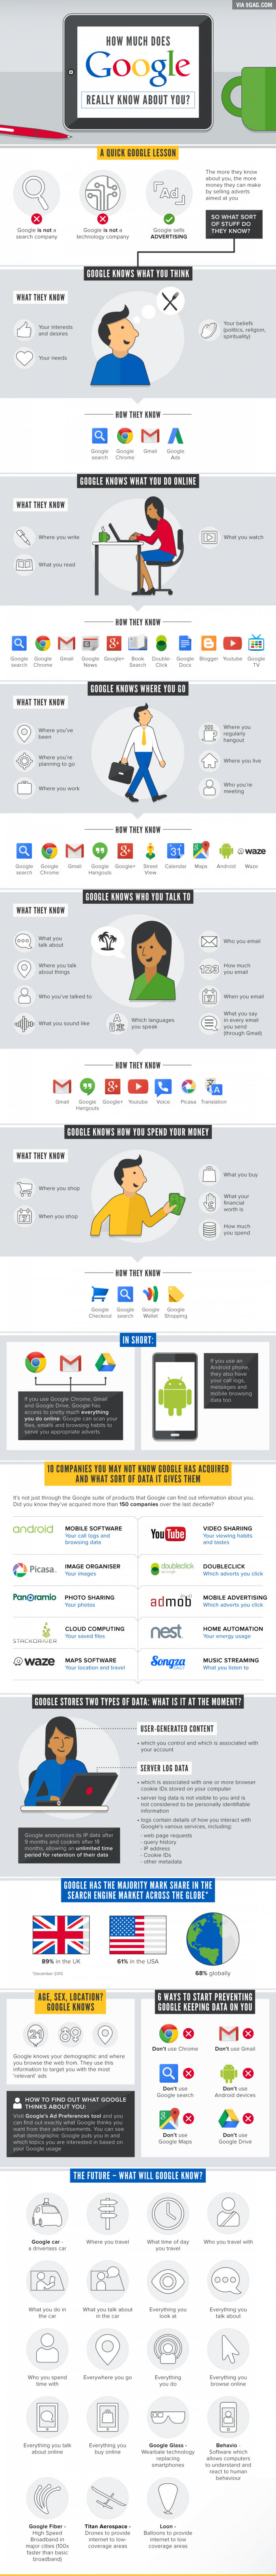 How much google knows about you infographic